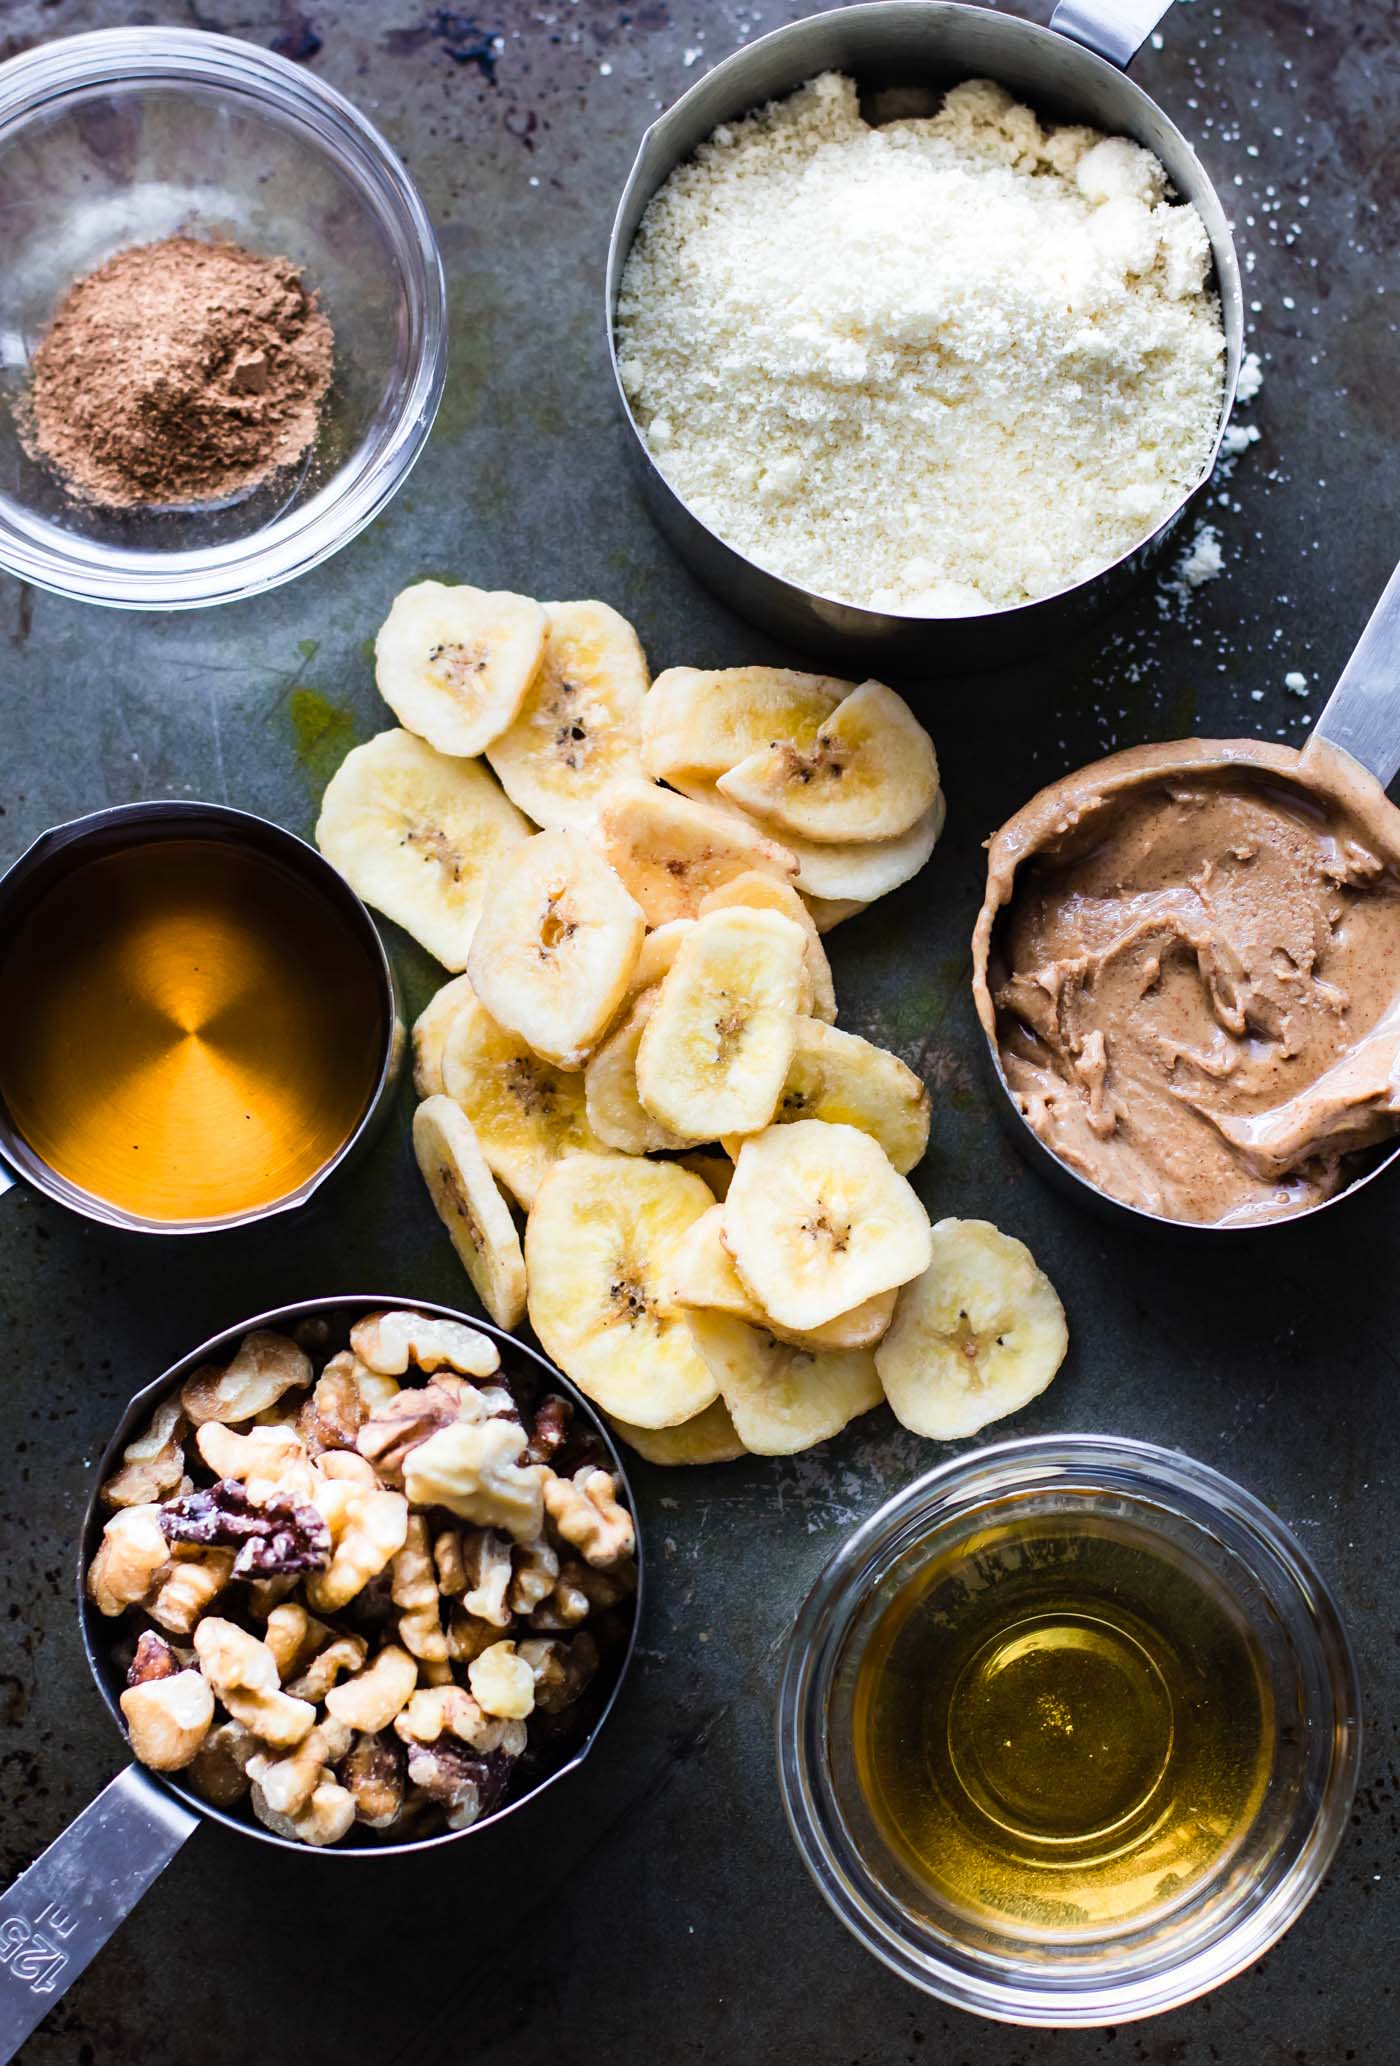 ingredients to make dairy free banana bread